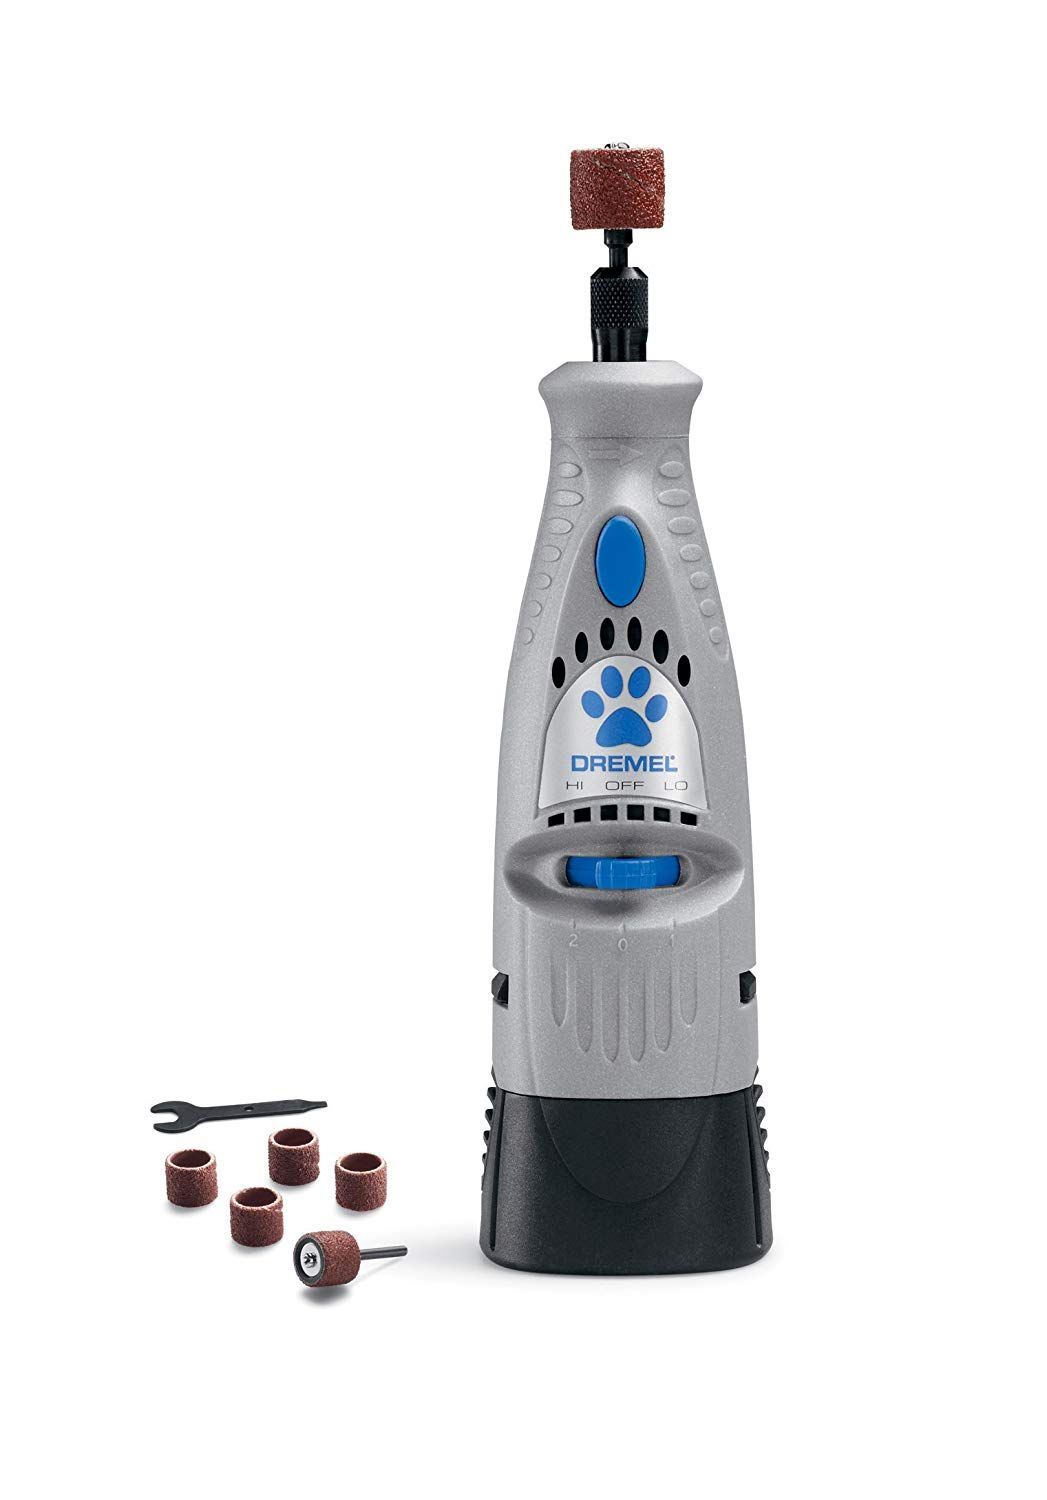 Dog dremel